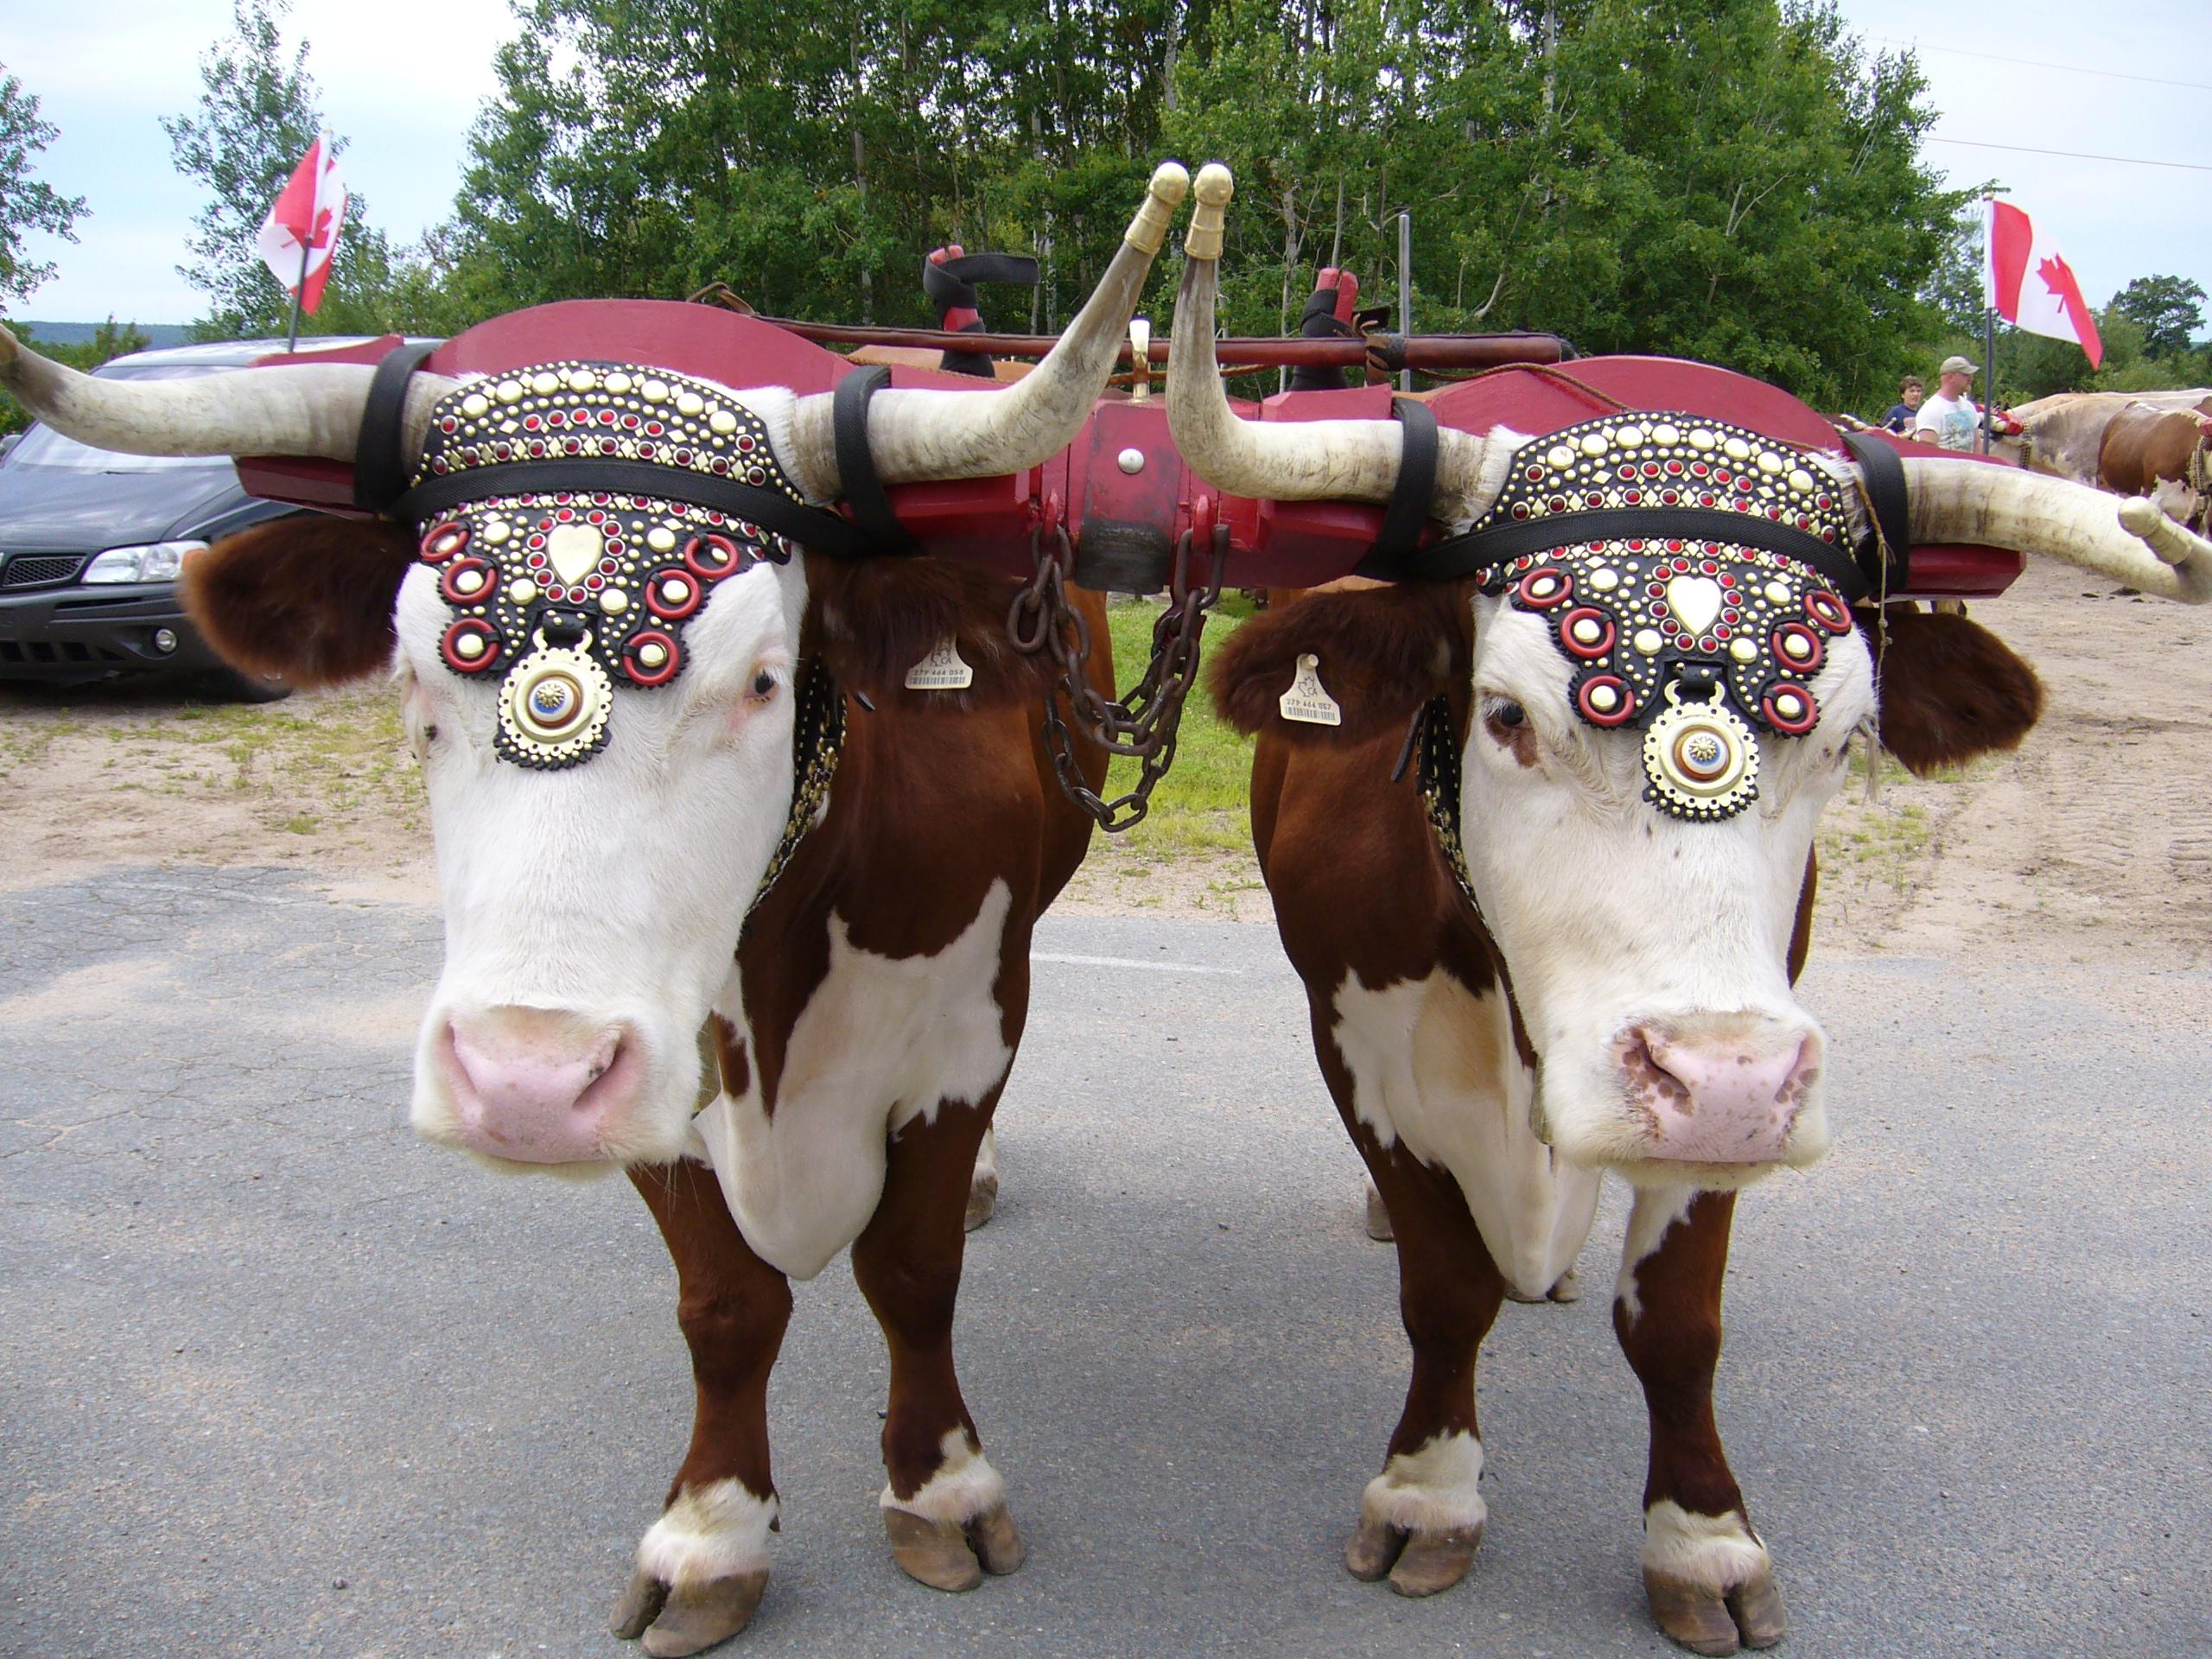 Oxen yoked together